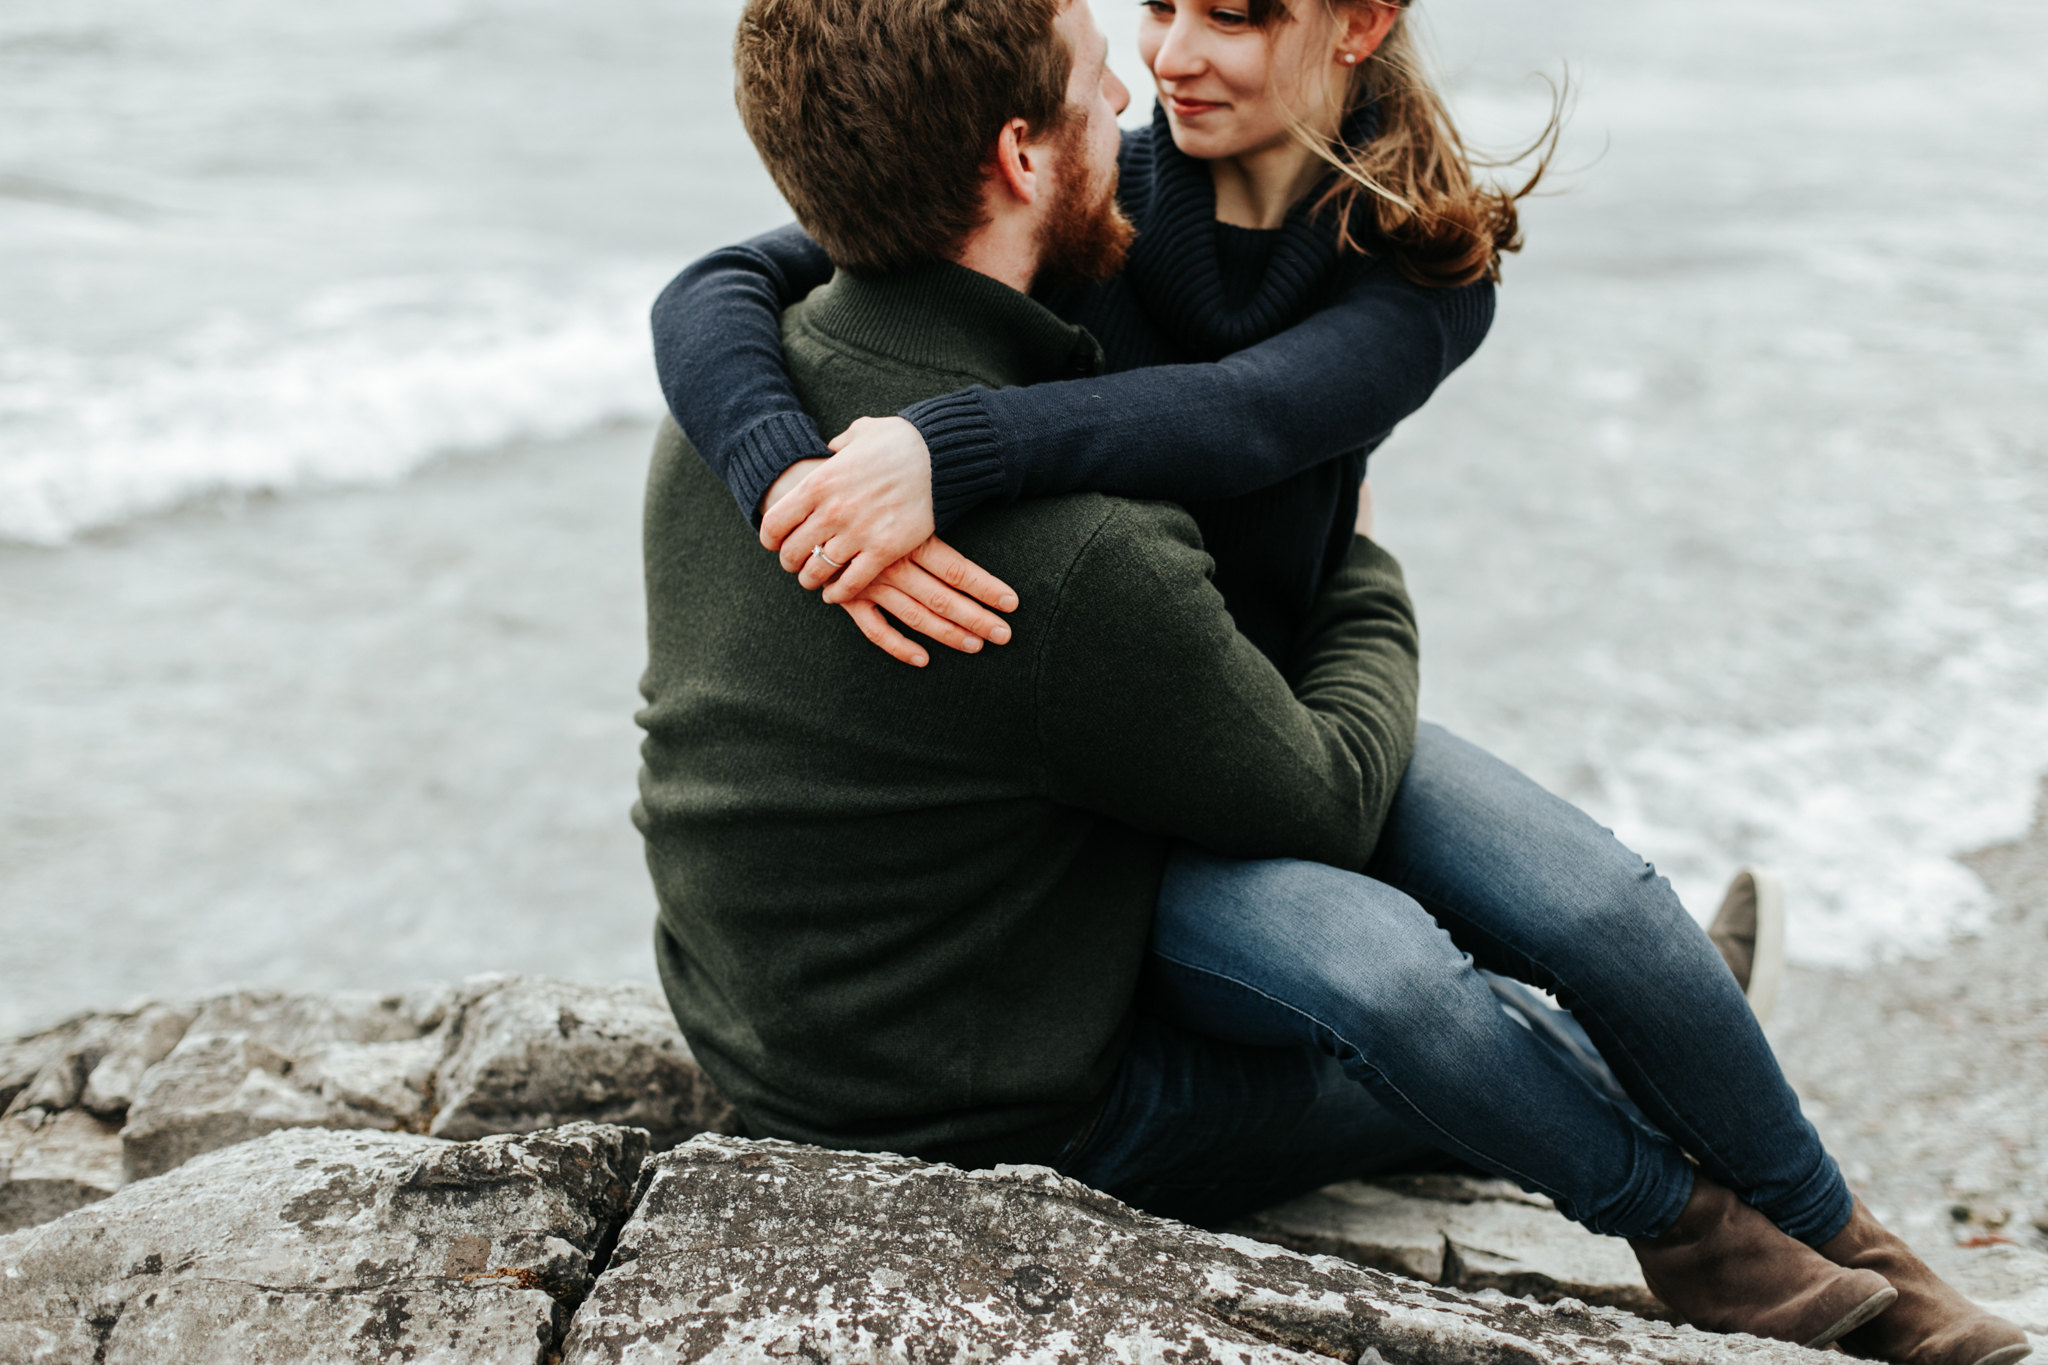 waterton-engagement-love-and-be-loved-photography-mountain-photographer-picture-image-photo-44.jpg